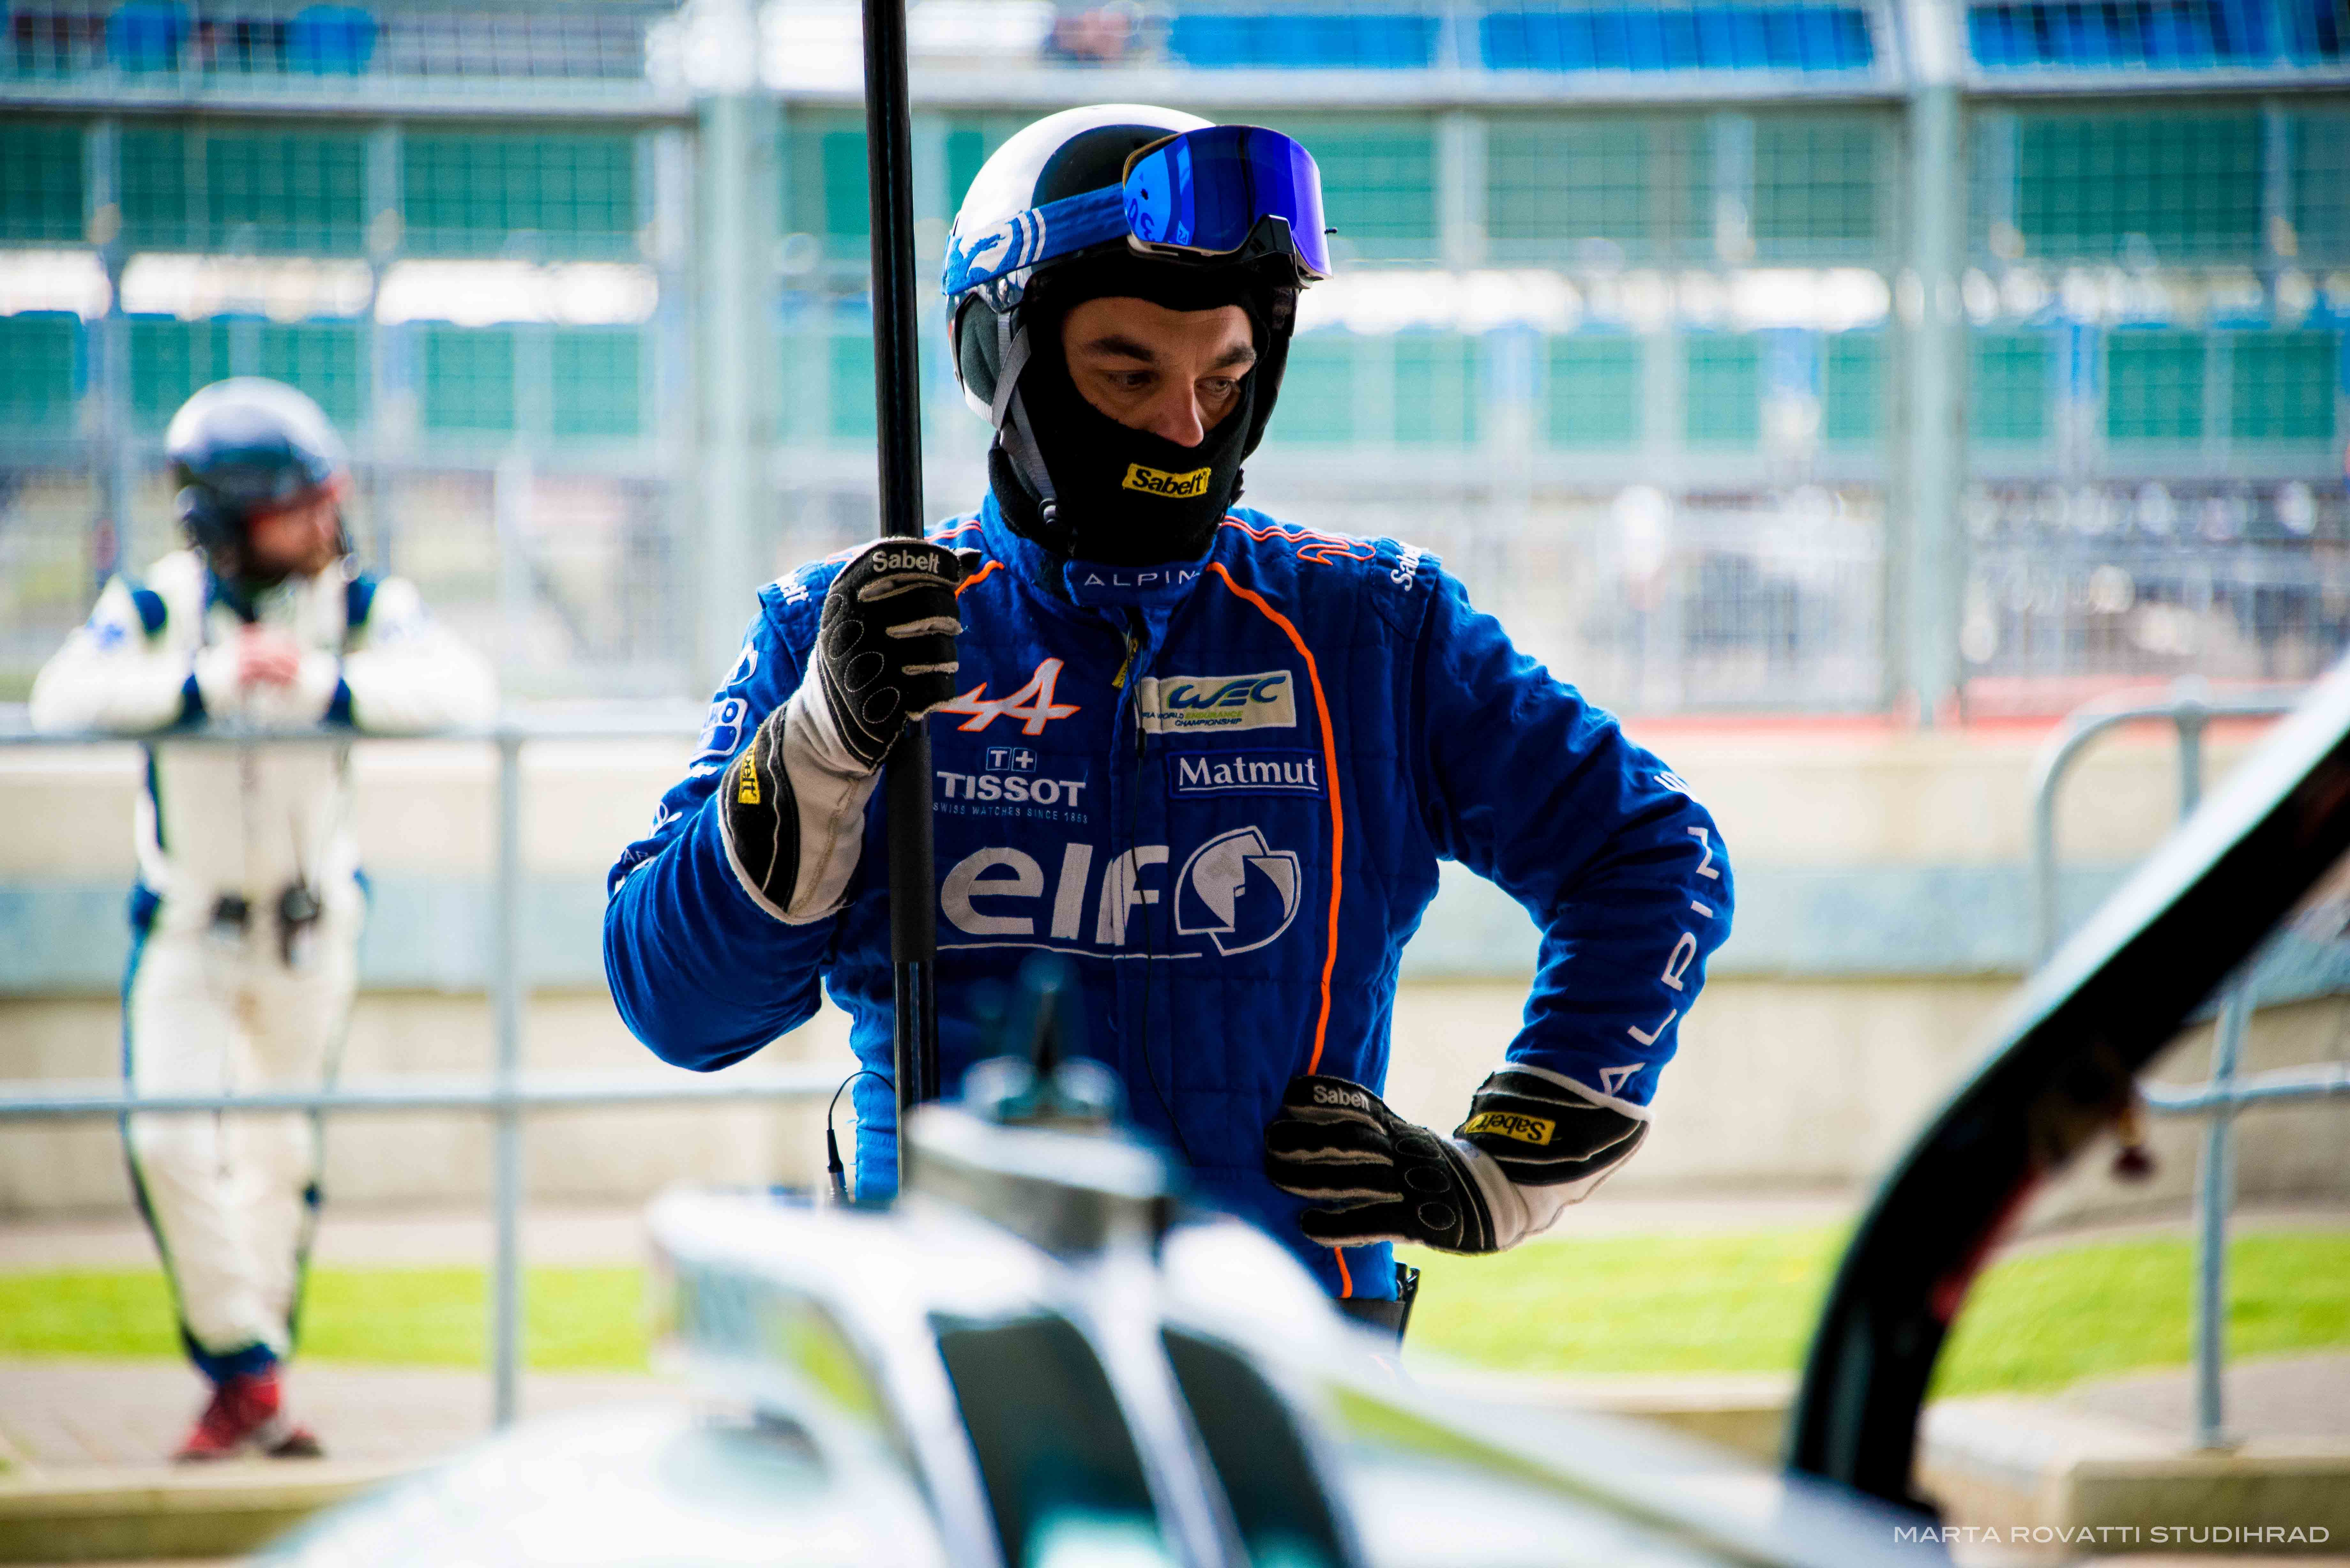 Spacesuit-Media-Marta-Rovatti-Studihrad-FIA-Formula-E-Marrakesh-ePrix-November-2016MGR_9138